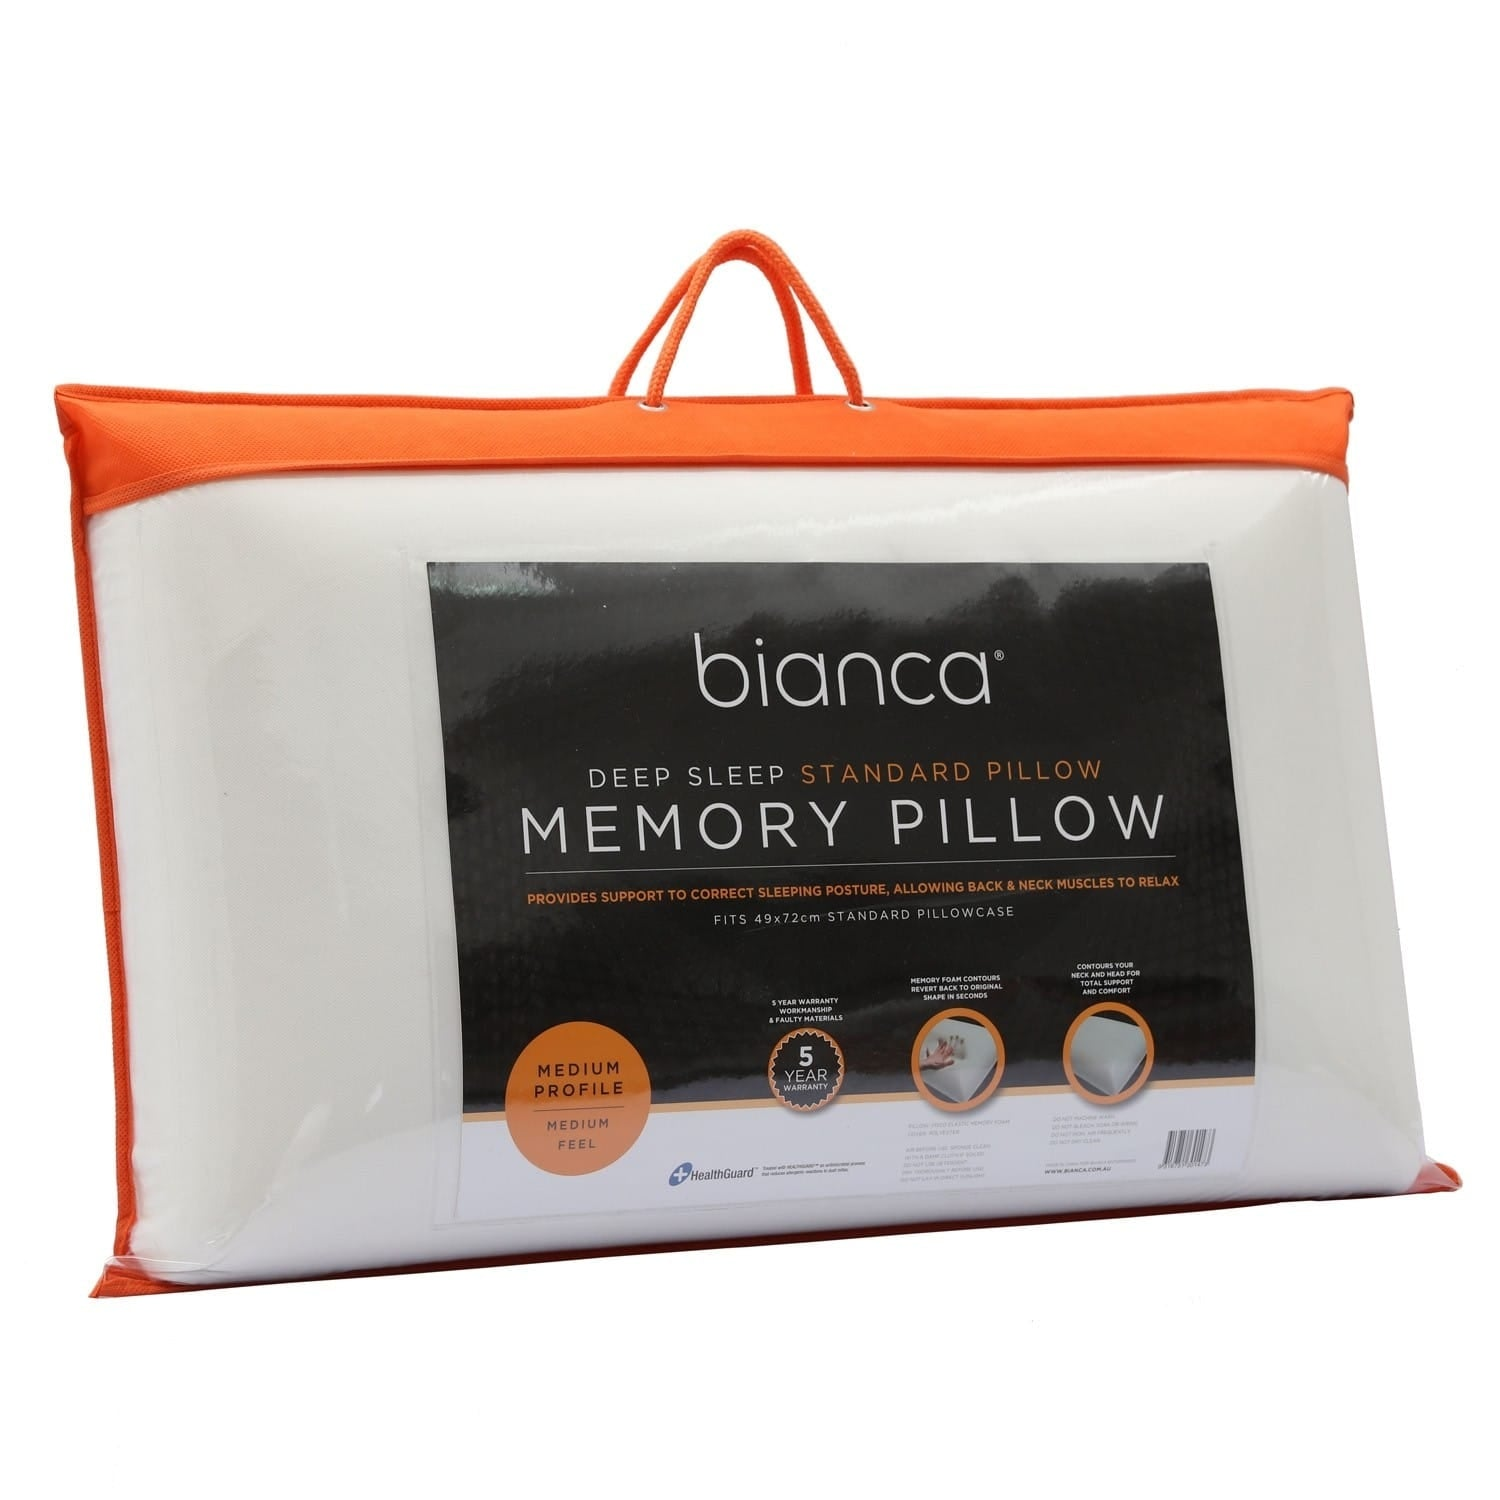 Bianca Deep Sleep Standard Memory Foam Pillow